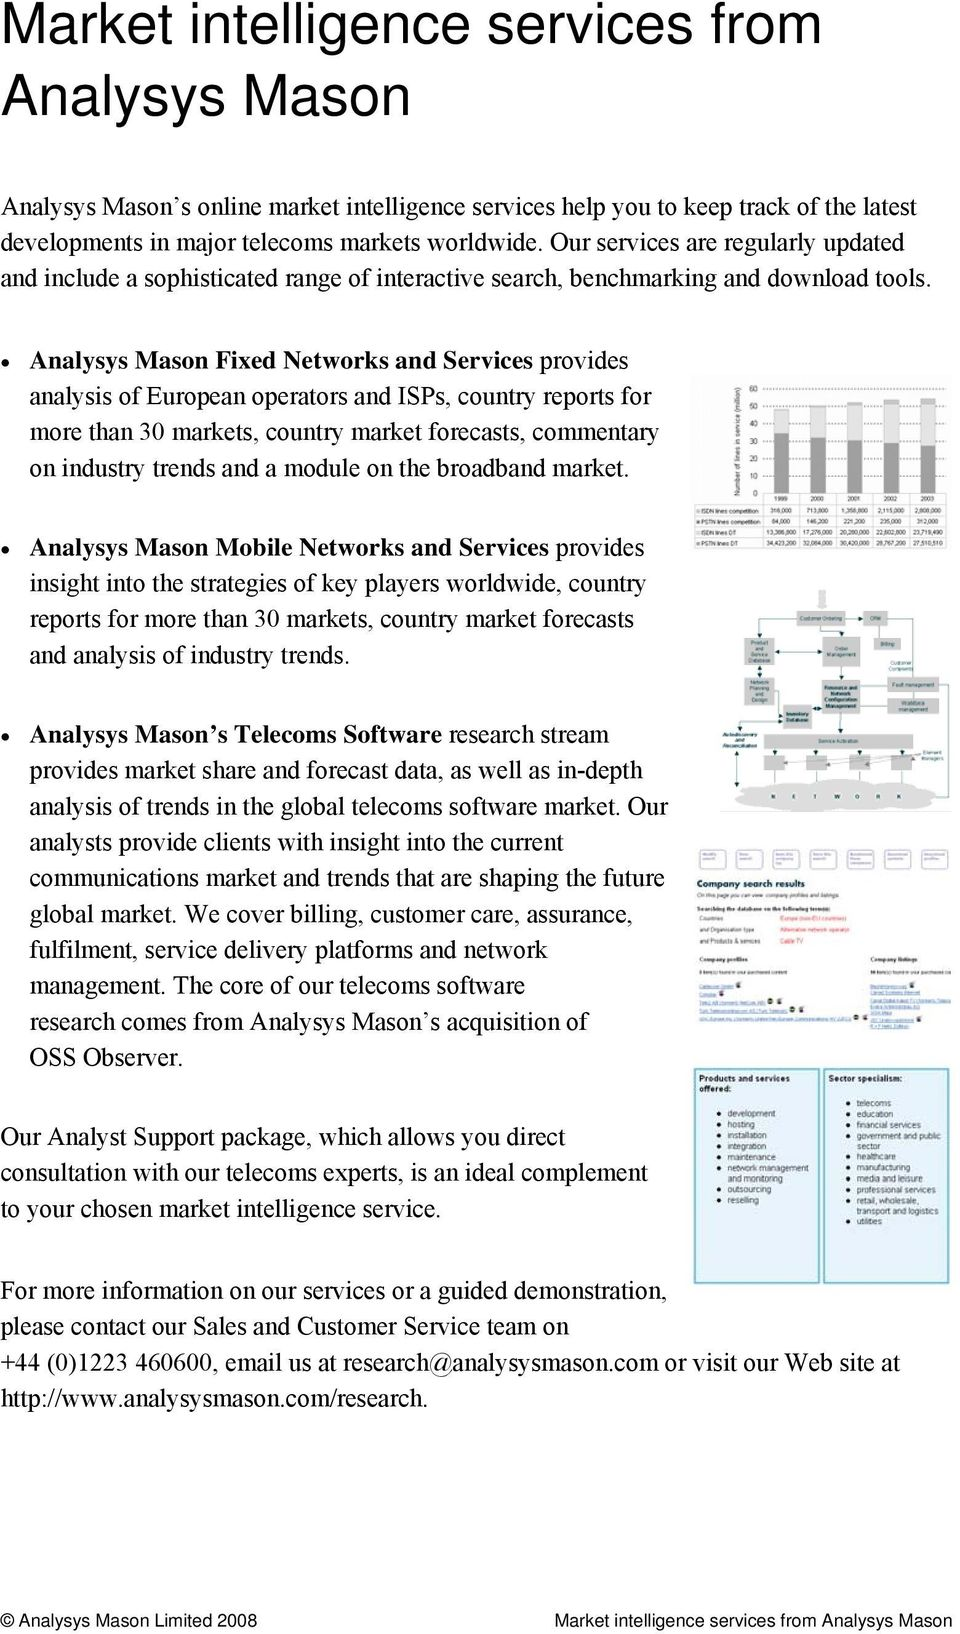 Analysys Mason Fixed Networks and Services provides analysis of European operators and ISPs, country reports for more than 30 markets, country market forecasts, commentary on industry trends and a